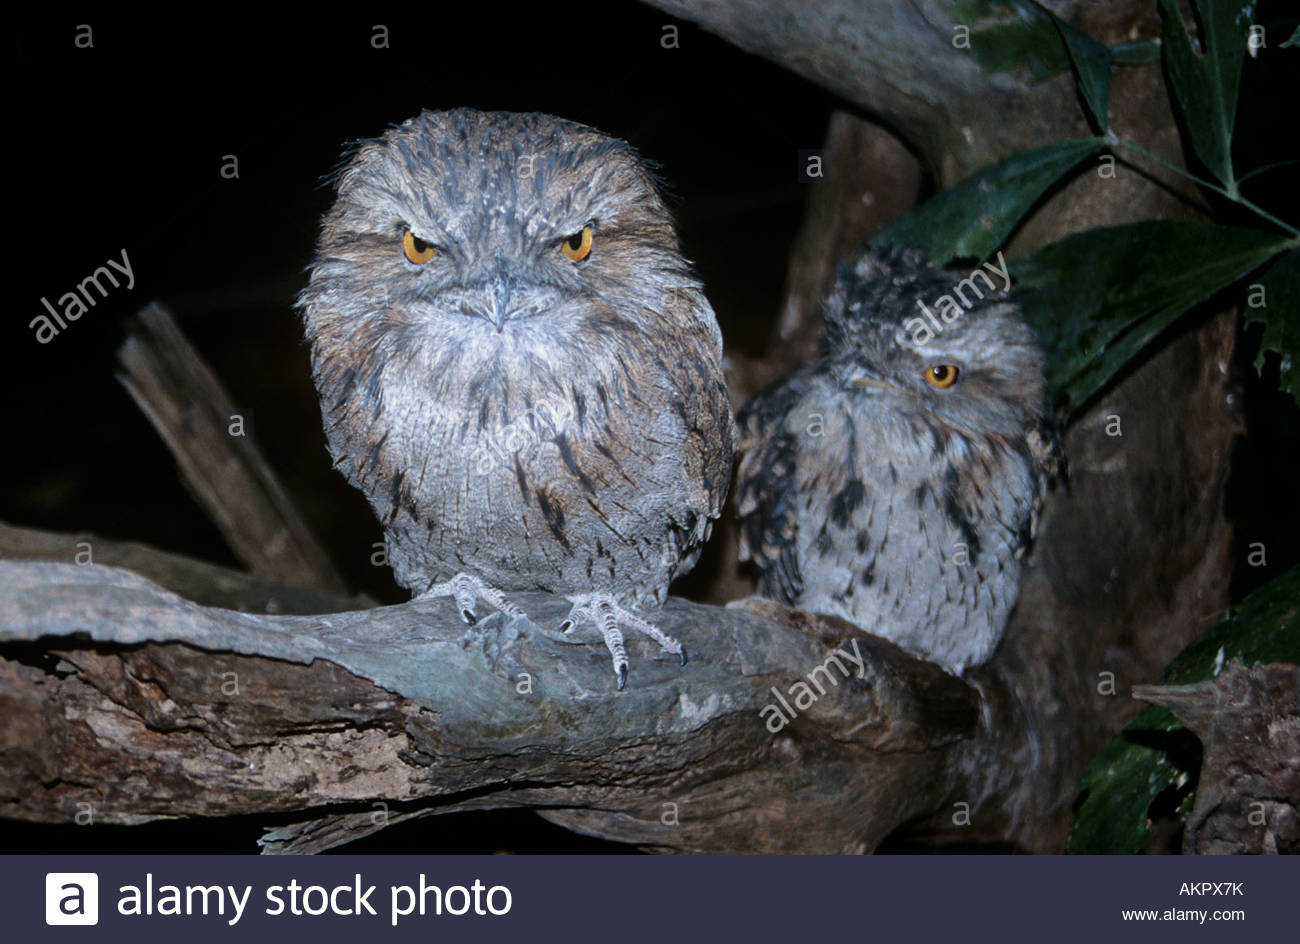 Two owls - Stock Image